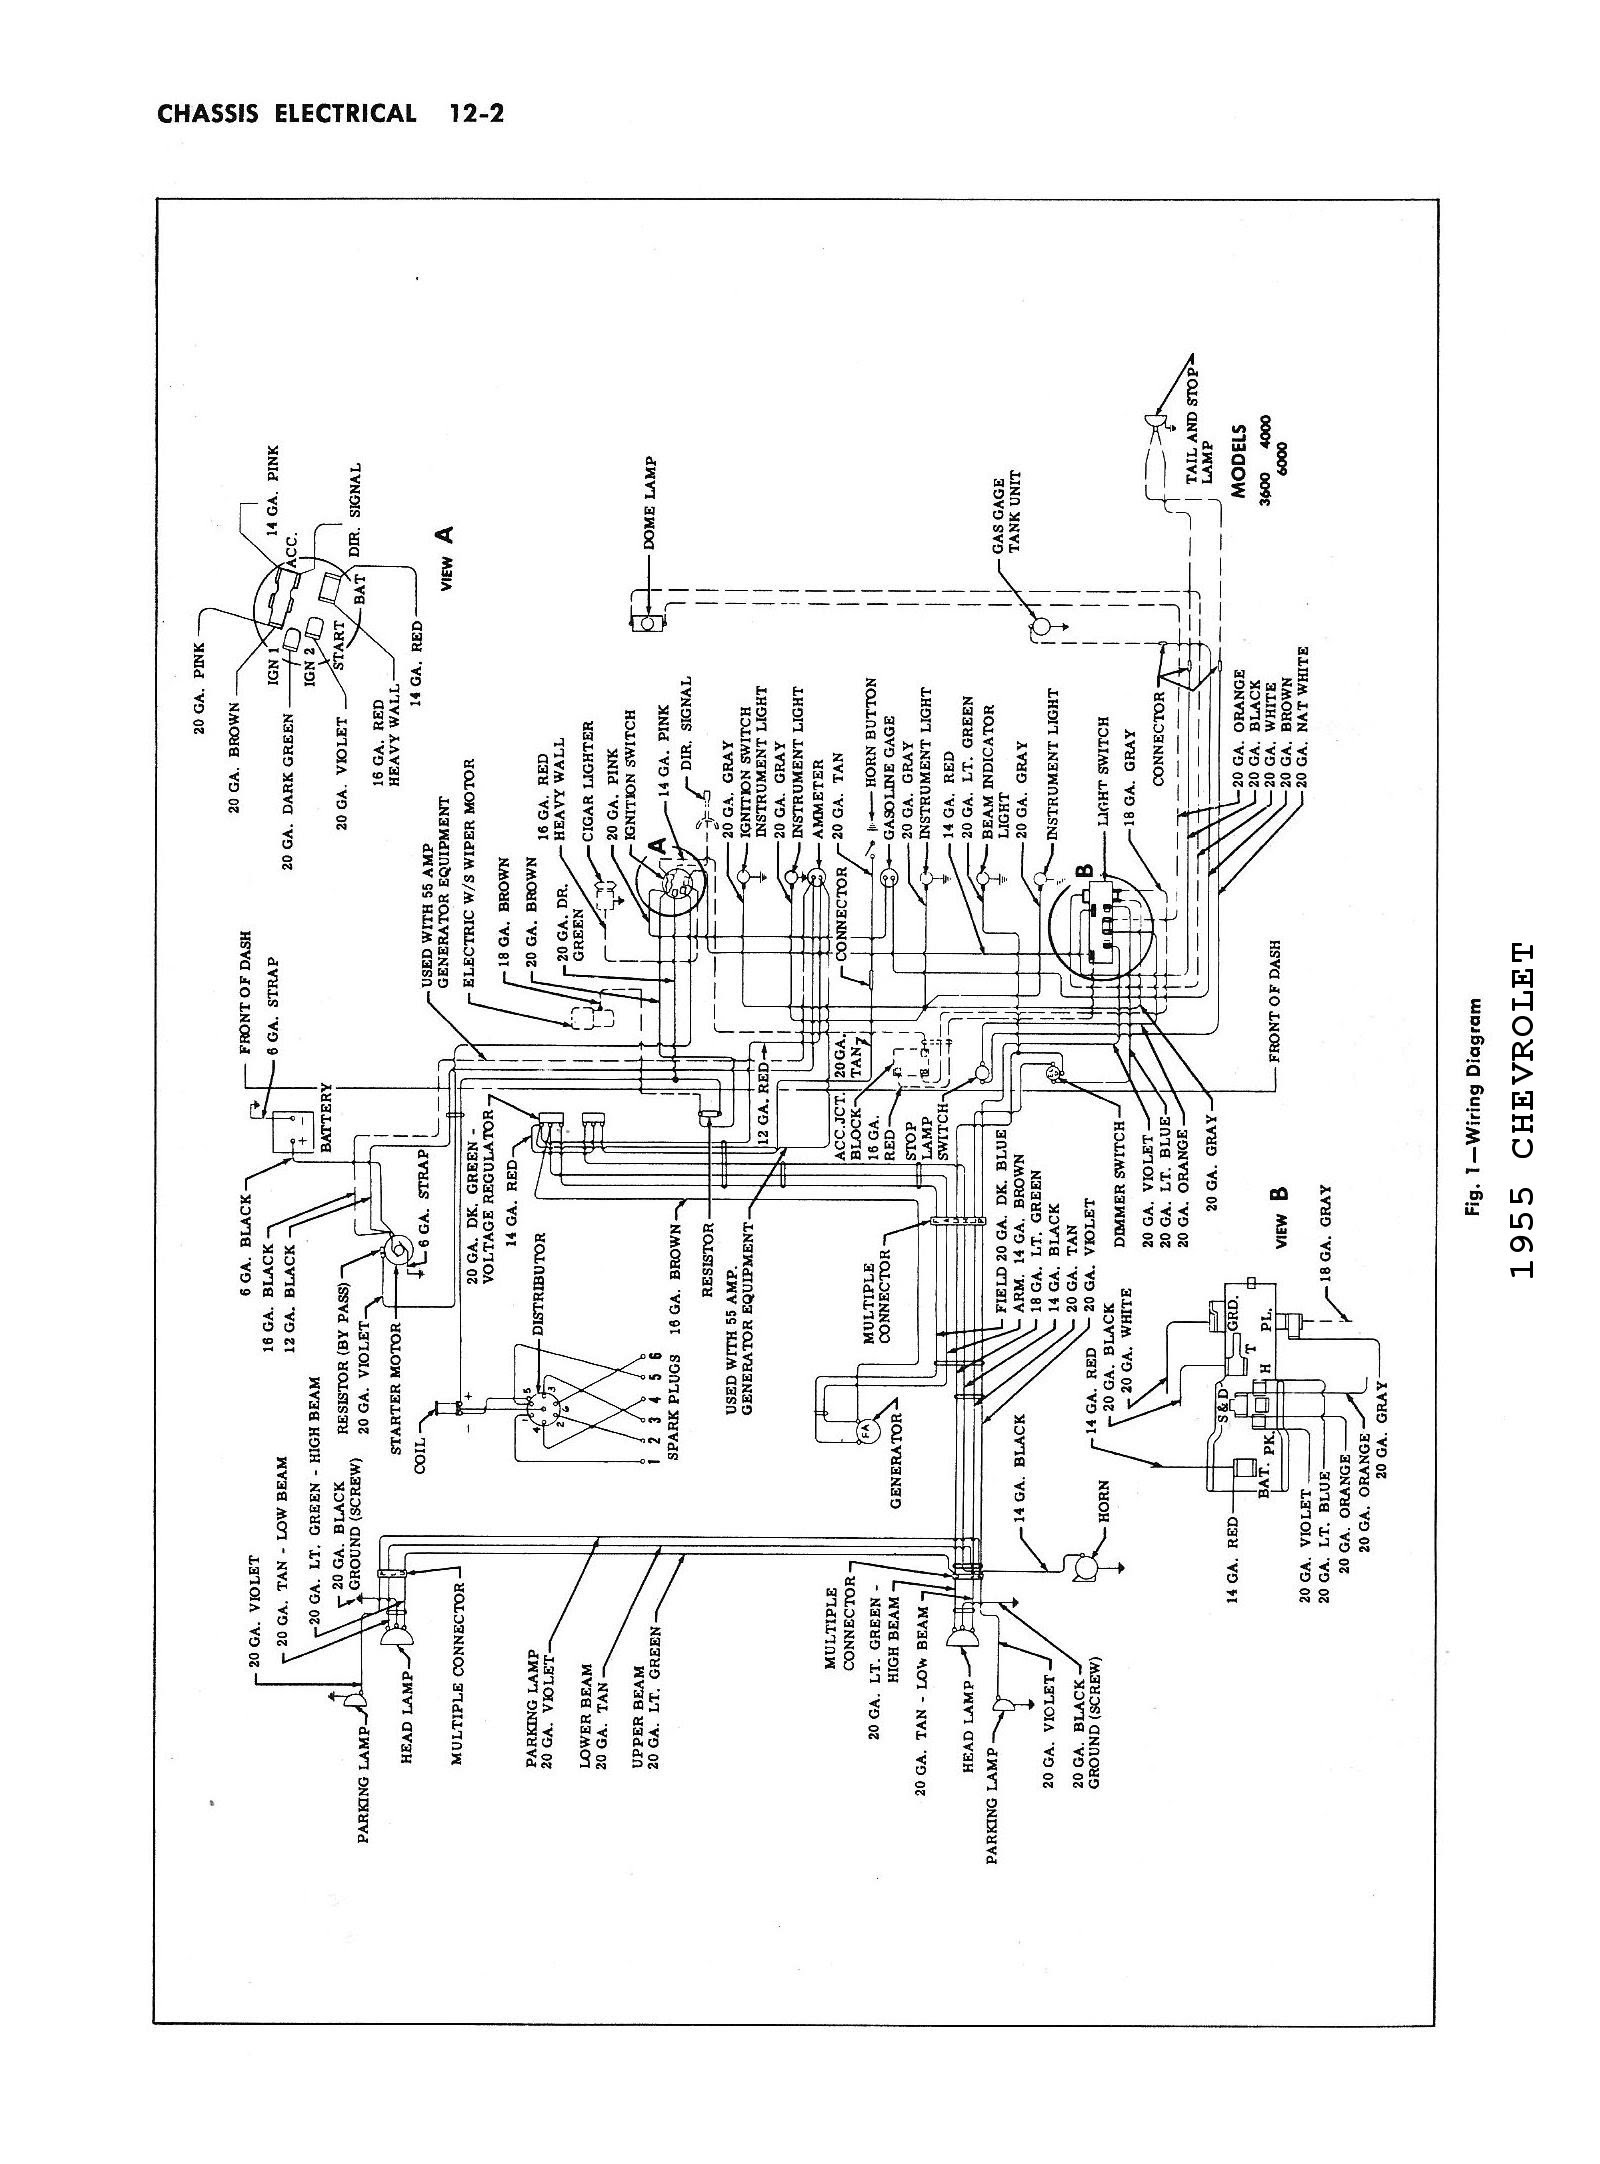 1958 Chevy Tail Light Wiring Wiring Diagram Dedicated Dedicated Pasticceriagele It